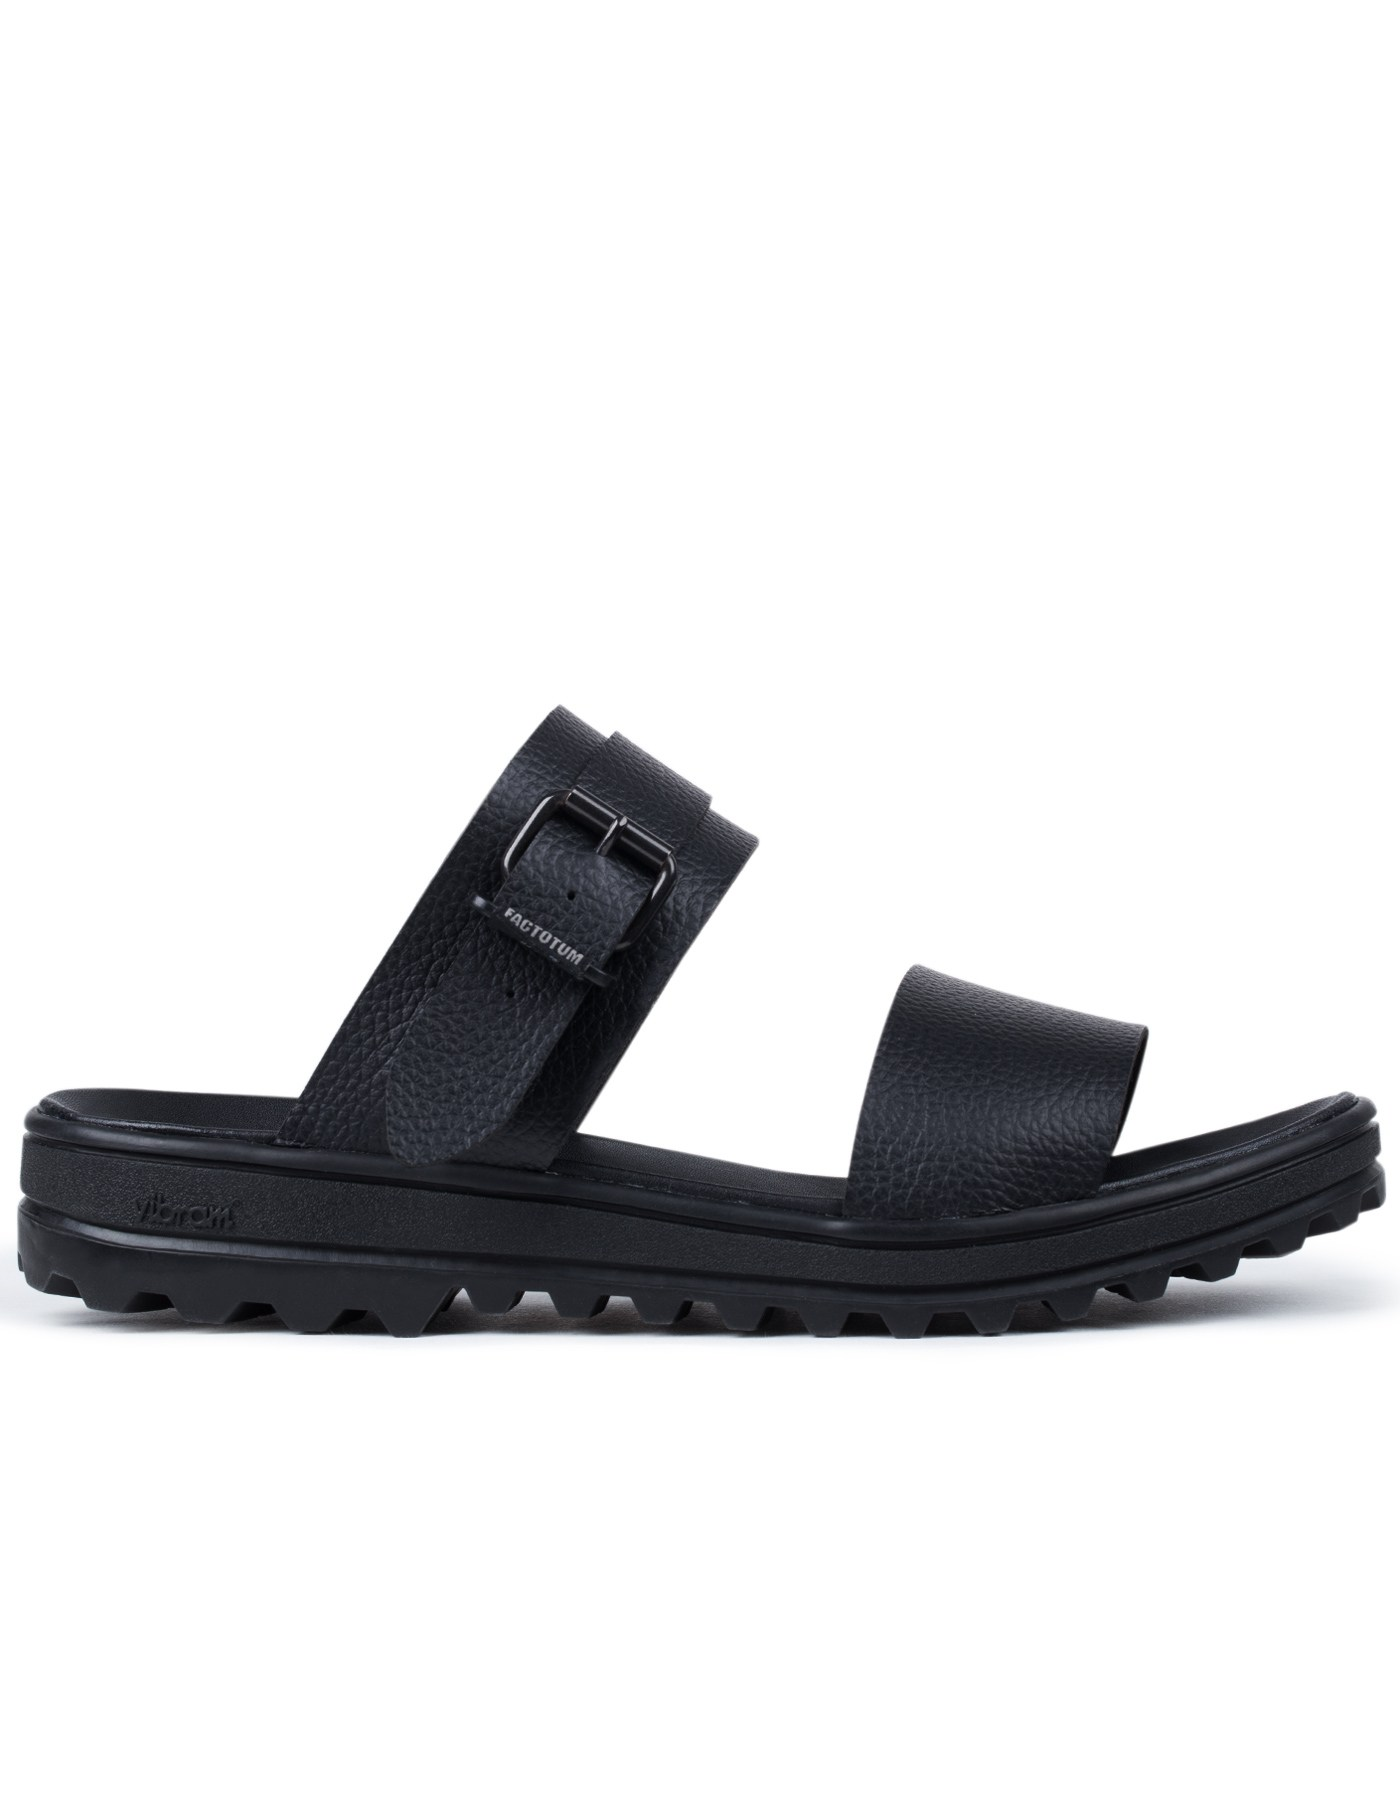 5903fe4c1cc2 Buy Original VALLIS BY FACTOTUM Two Way Sandals With Vibram Sole at ...